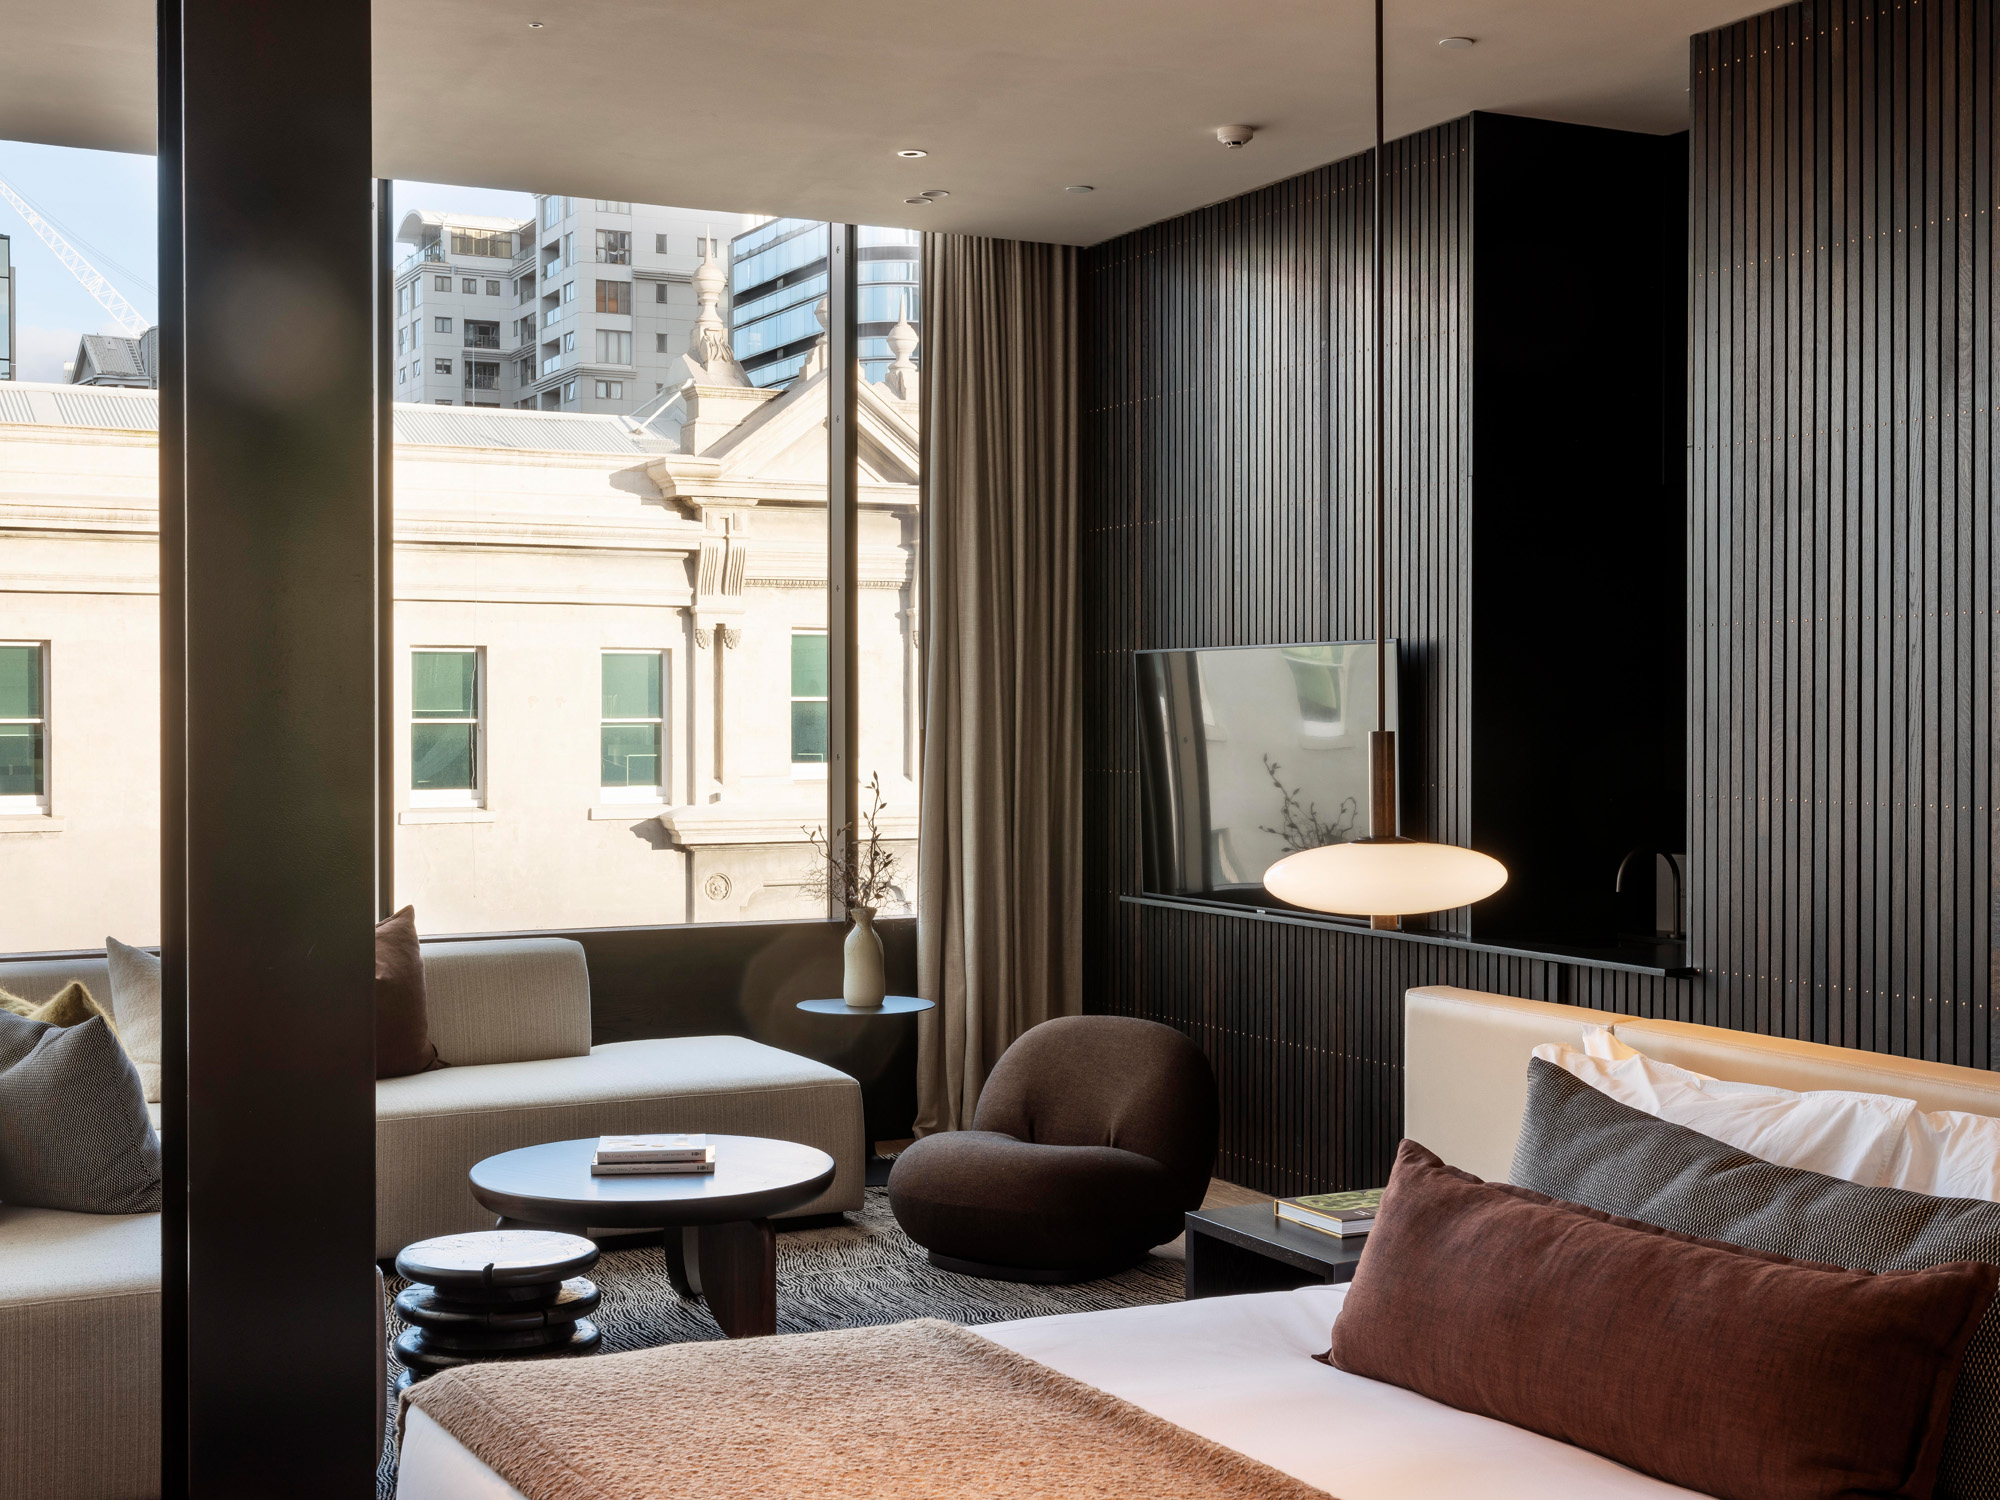 Hohi suite bedroom with window seat facing out to city - The Landing Suites at The Hotel Britomart